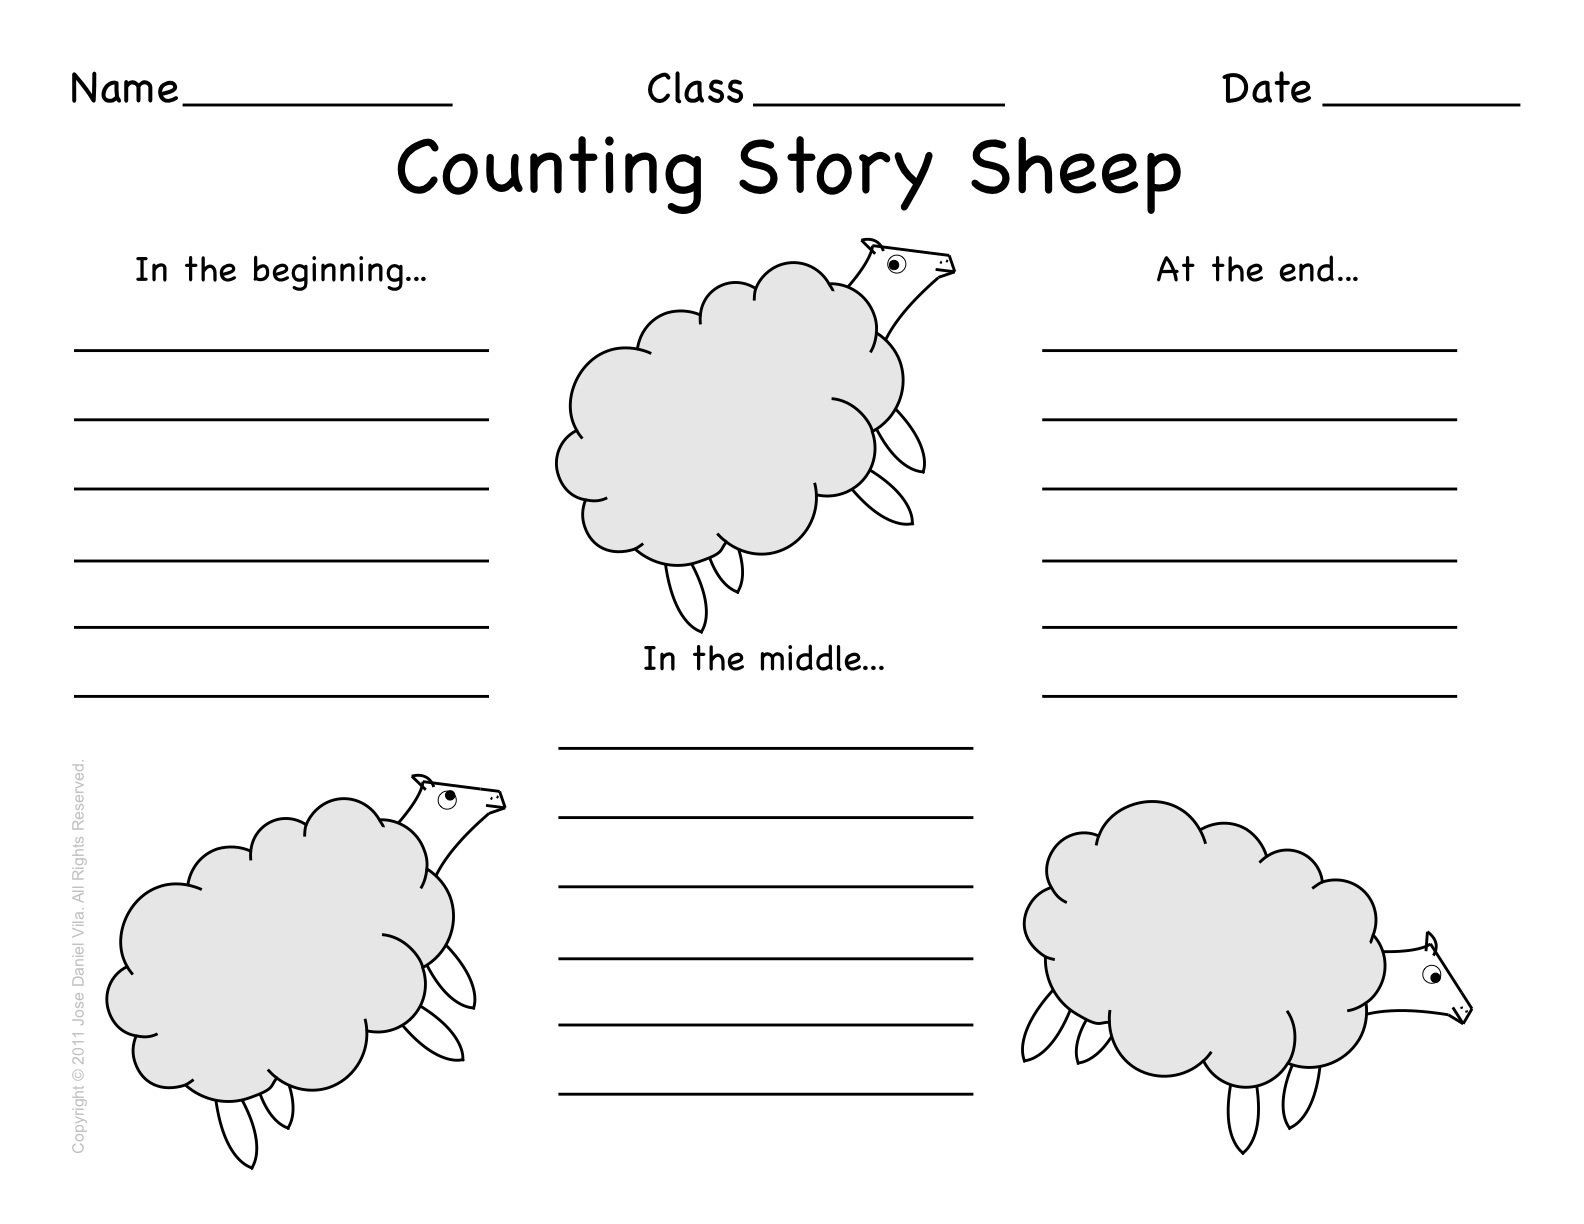 This Is A Worksheet I Made To Help My Students With